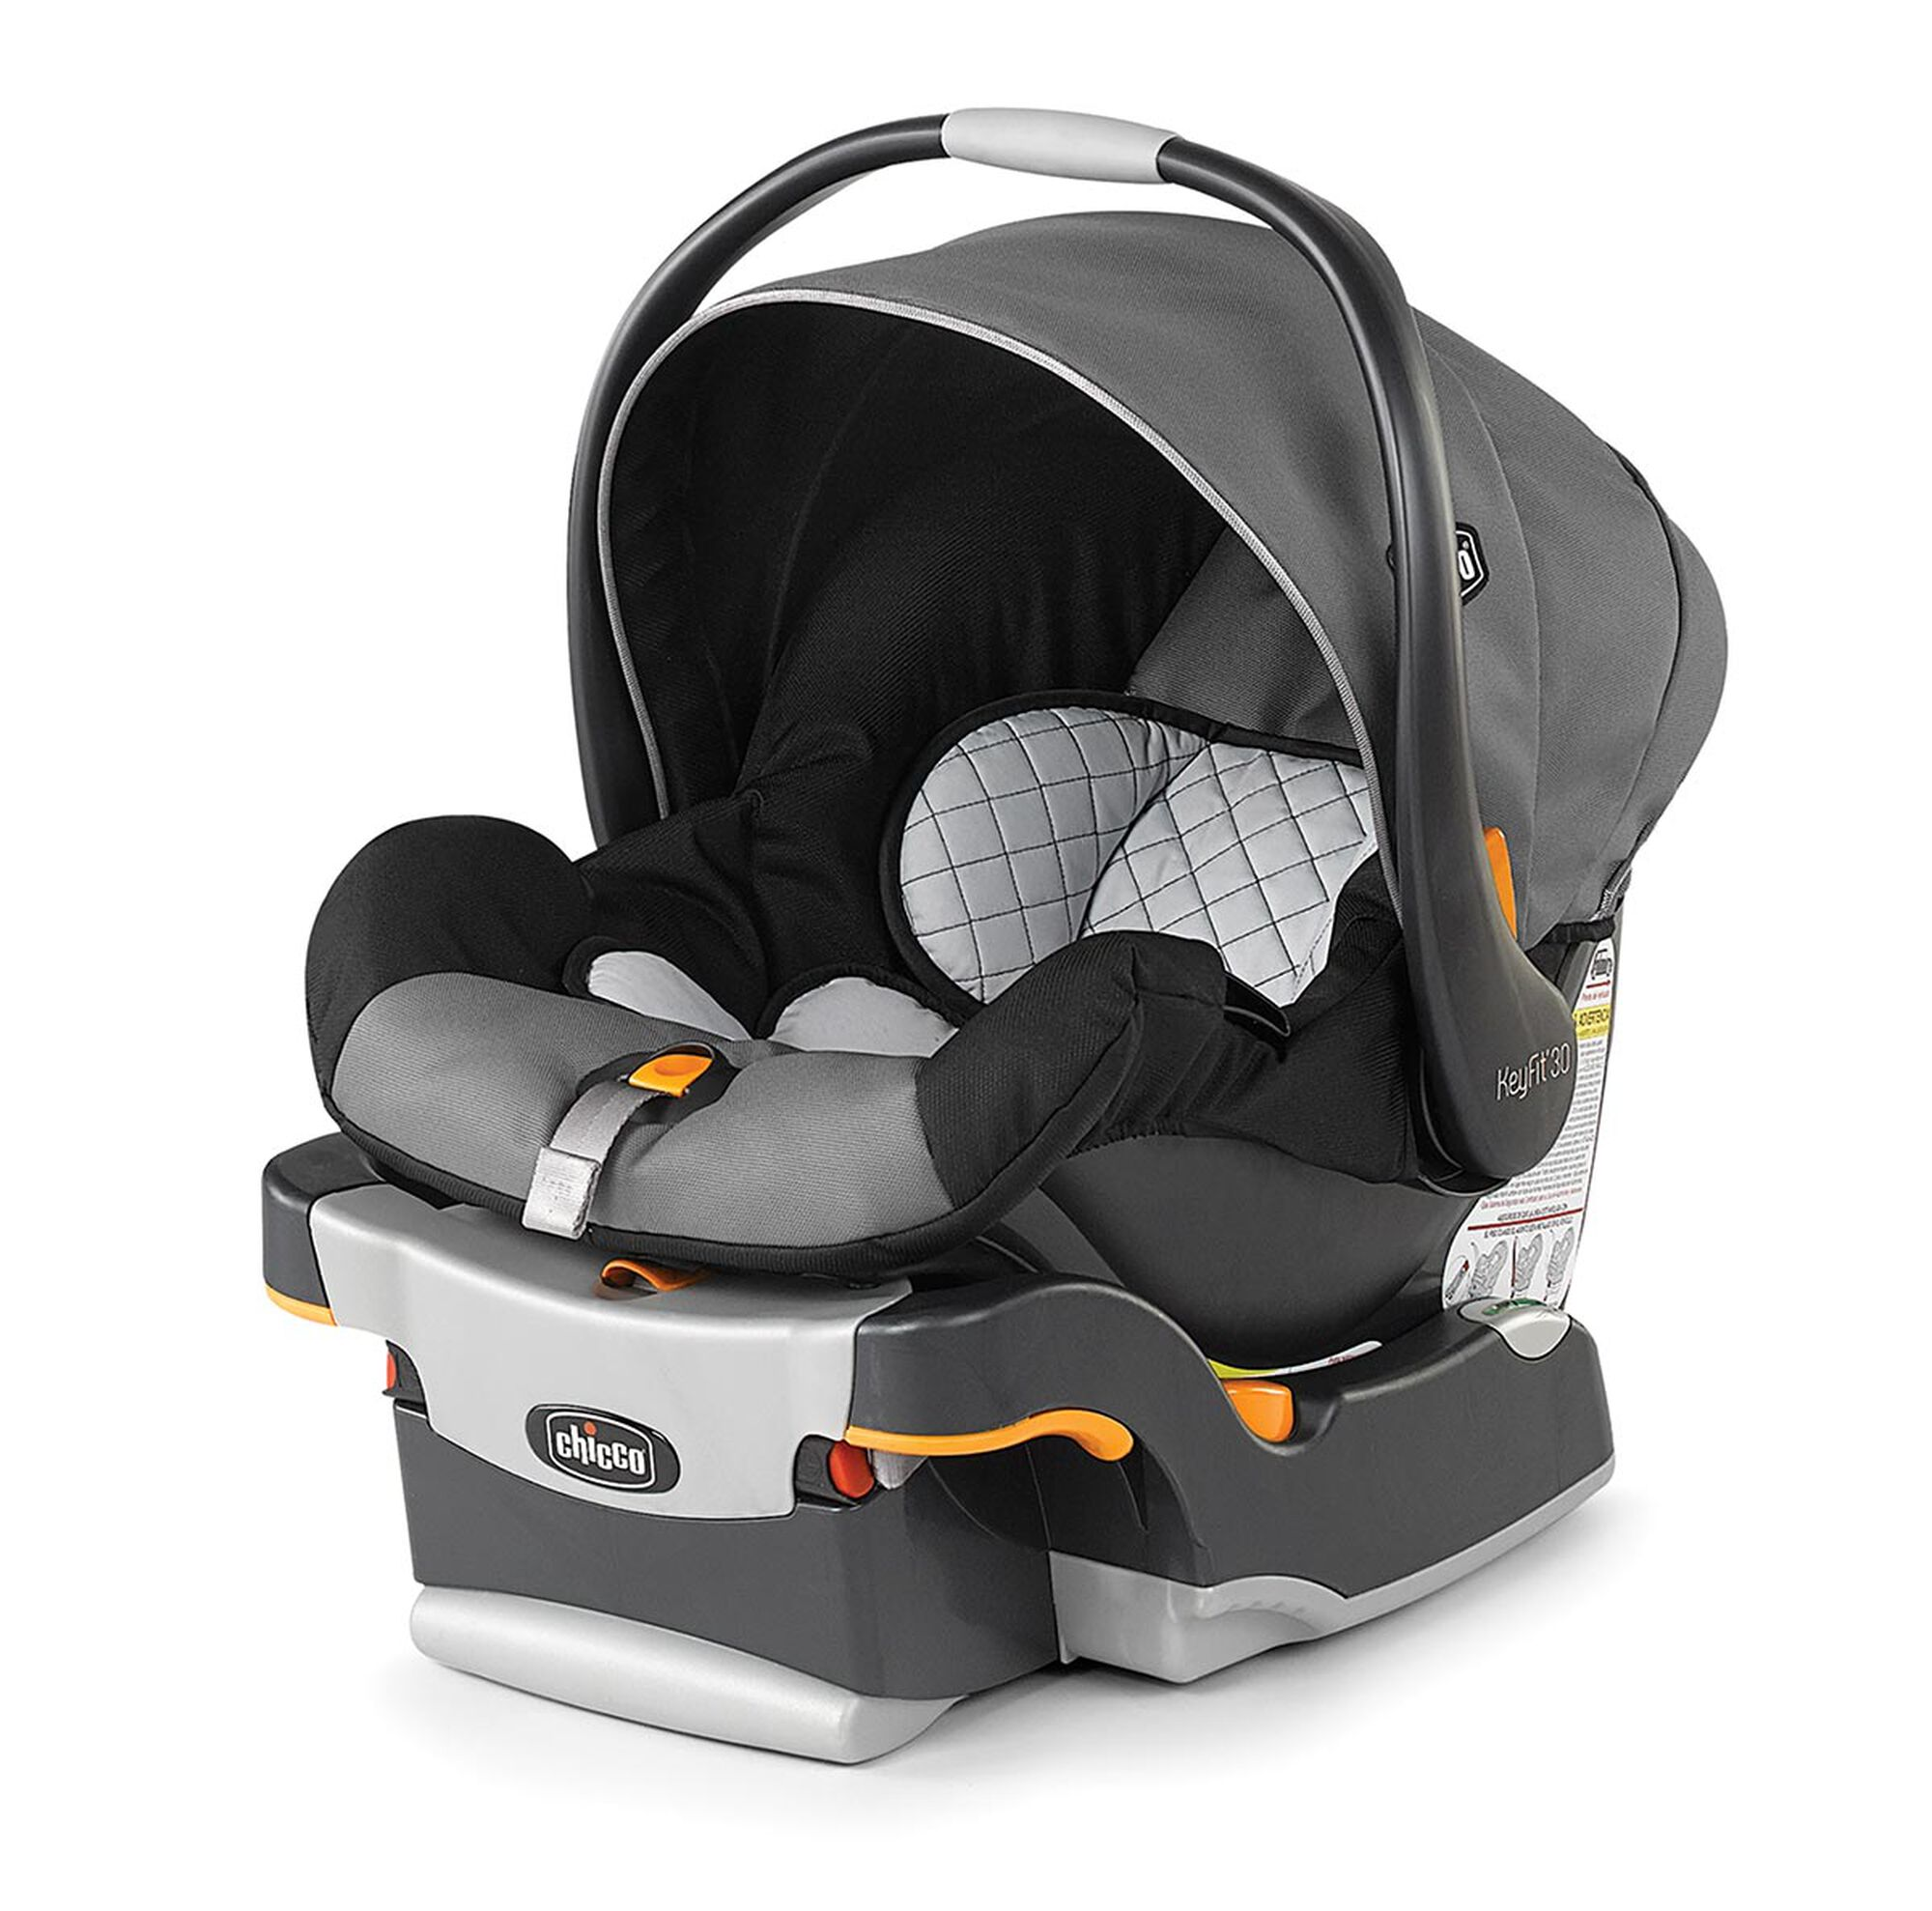 Vehicle Seats Product : Chicco keyfit infant car seat orion